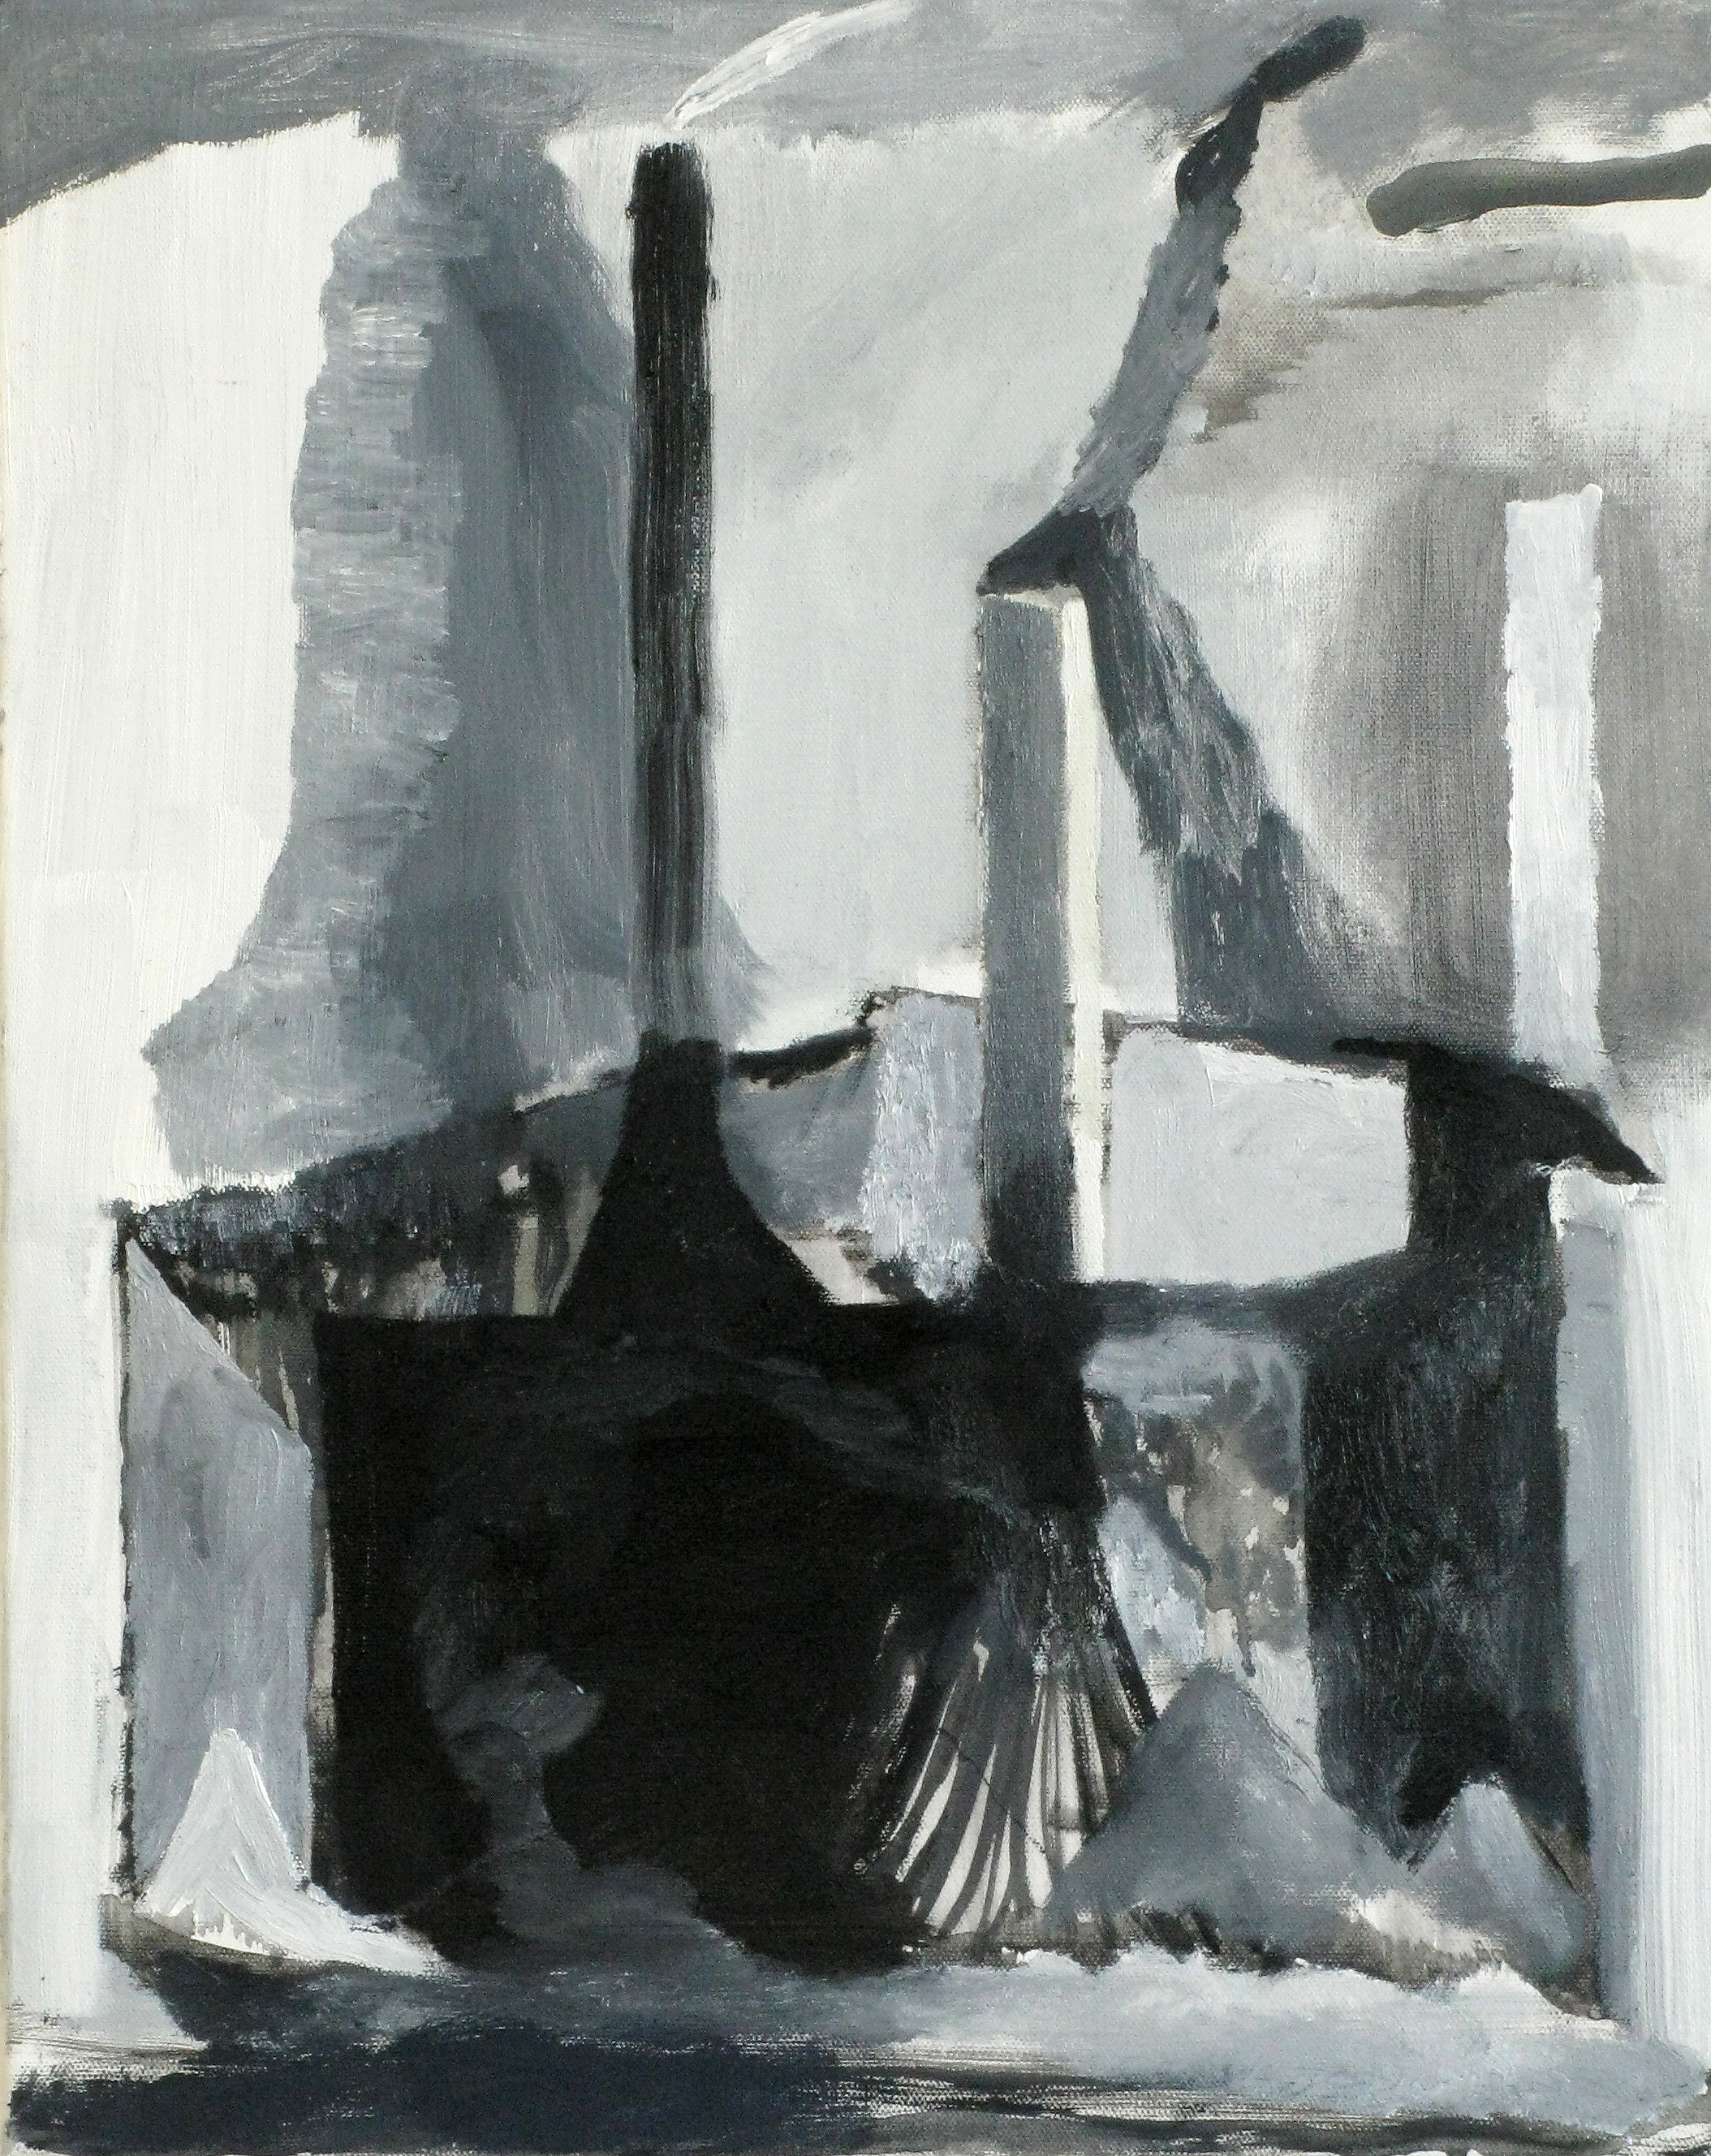 """CHRISTOPH ROßNER   Cloud Making Machine, oil and acrylic on canvas, 19.5"""" x 15.75"""", 2009"""